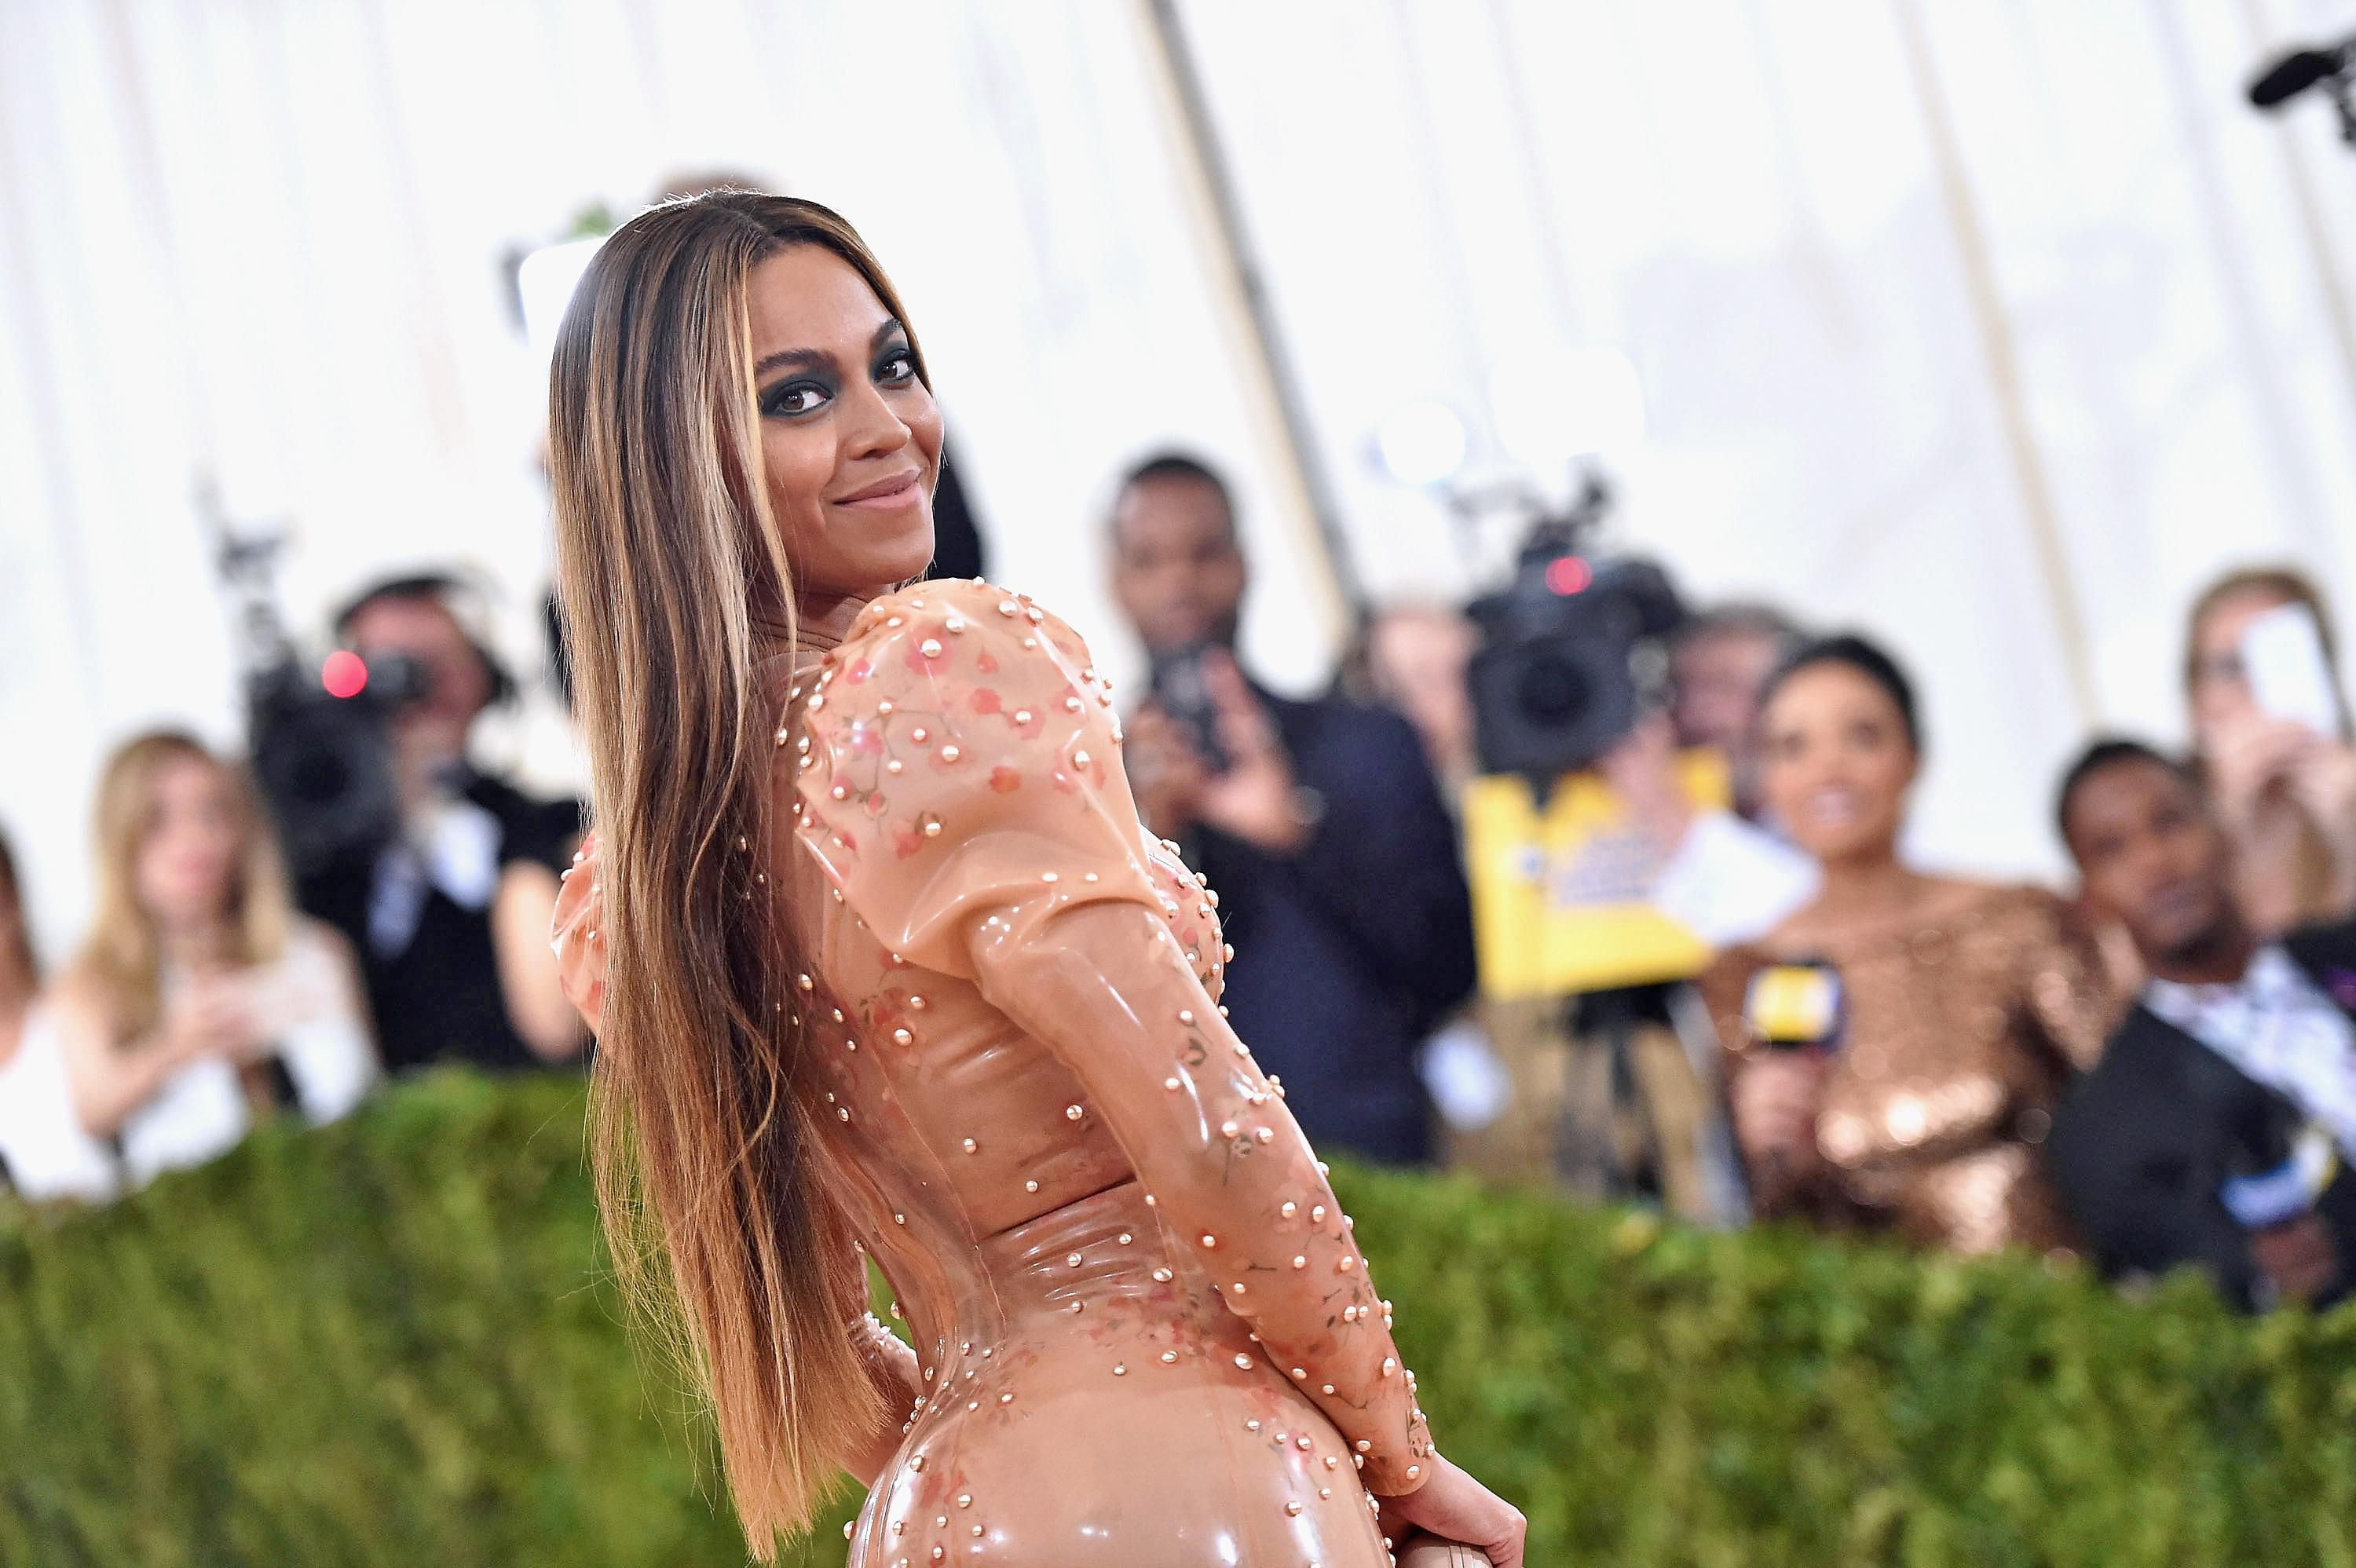 Beyonce's Documentary Of Making the Lion King Album Premieres Tonight